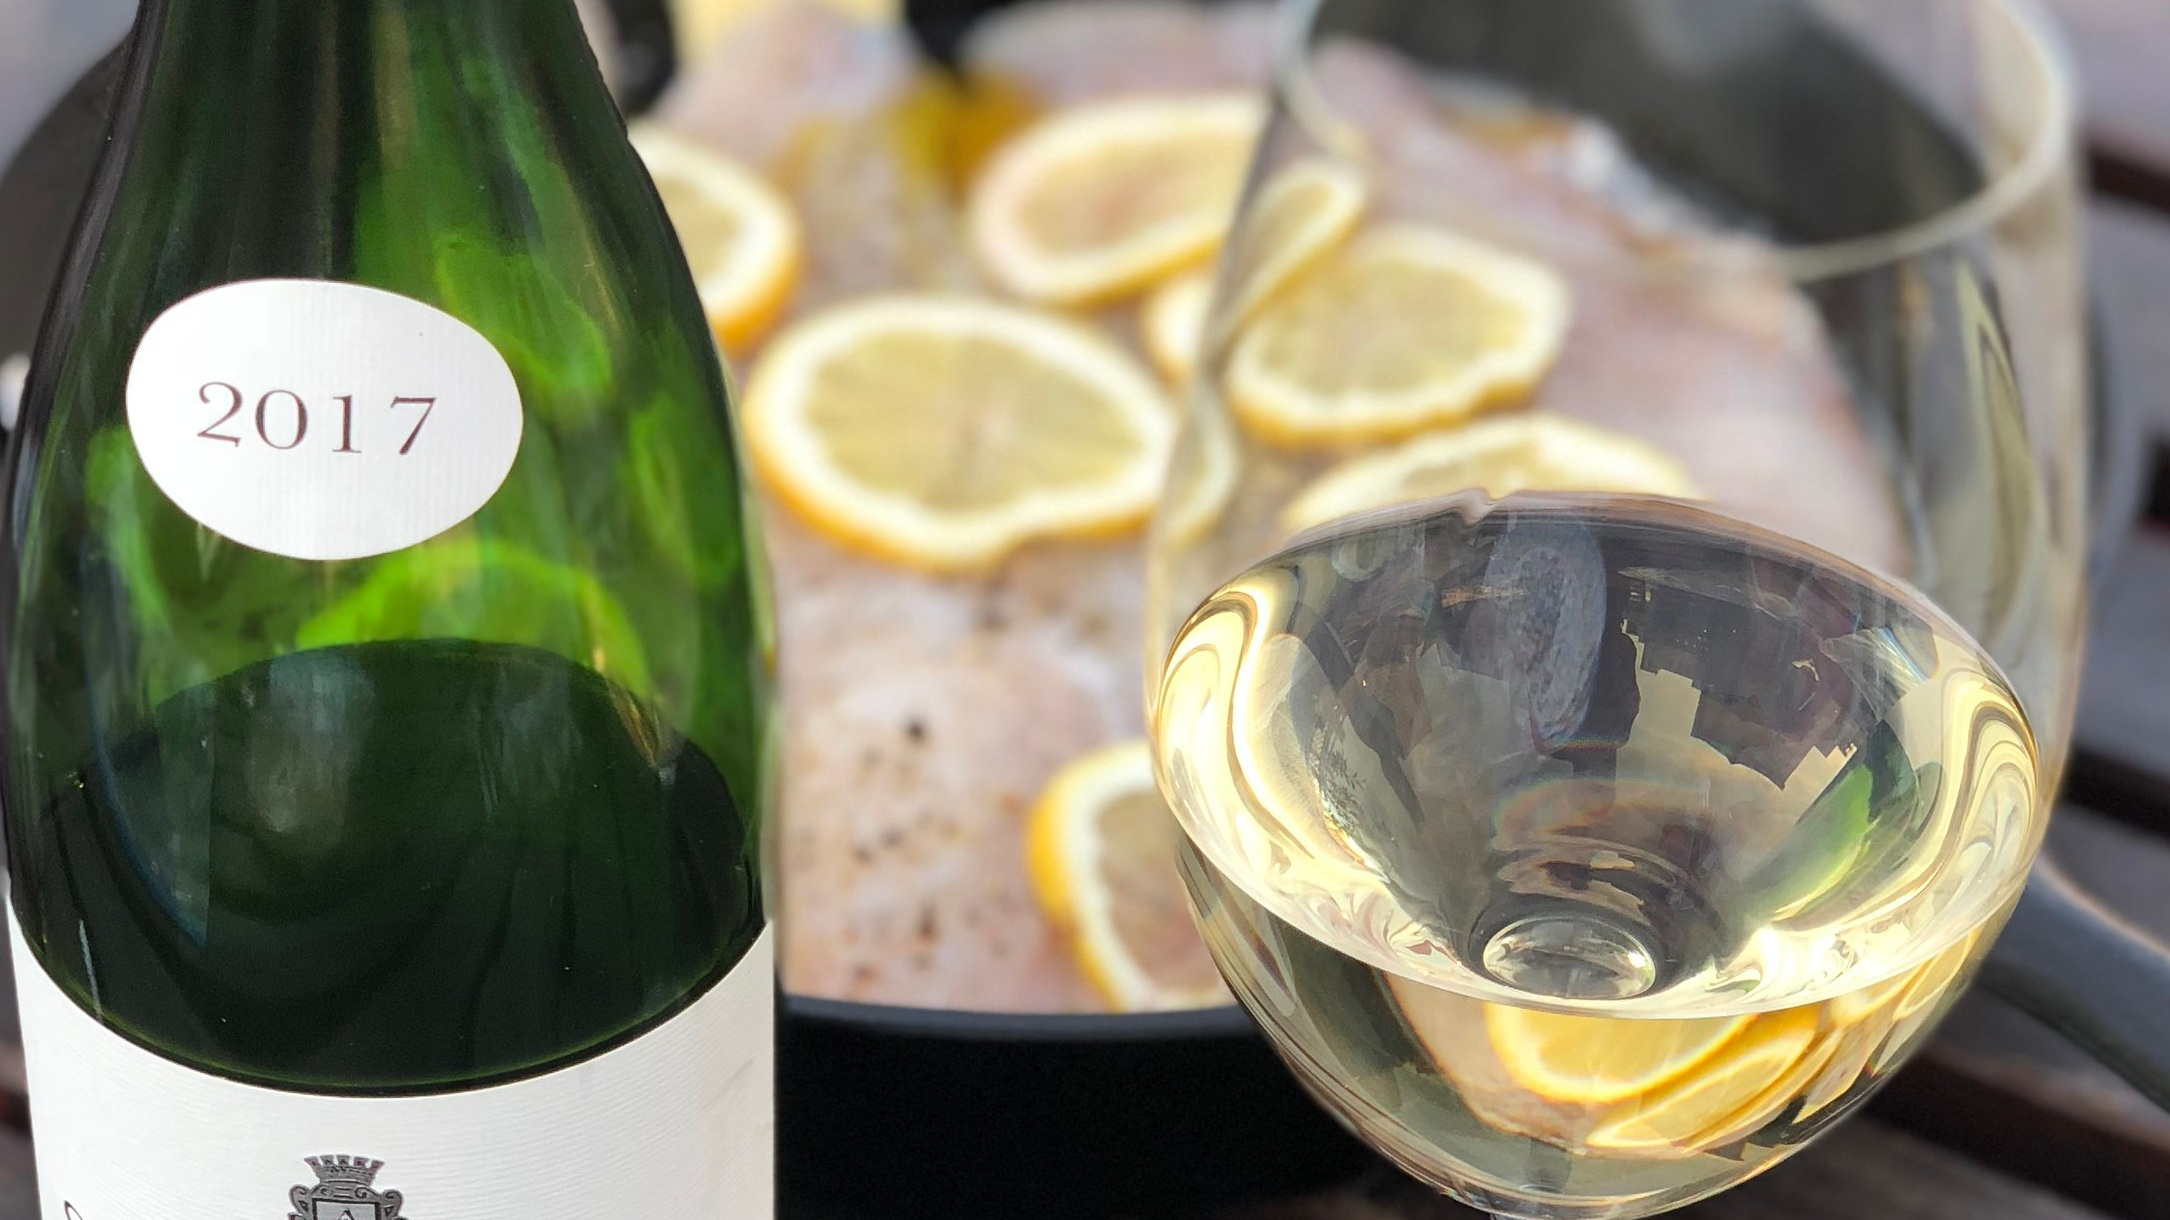 Want more? - Check out my tour de France: Flaweless Wine Pairings for Any Dinner!